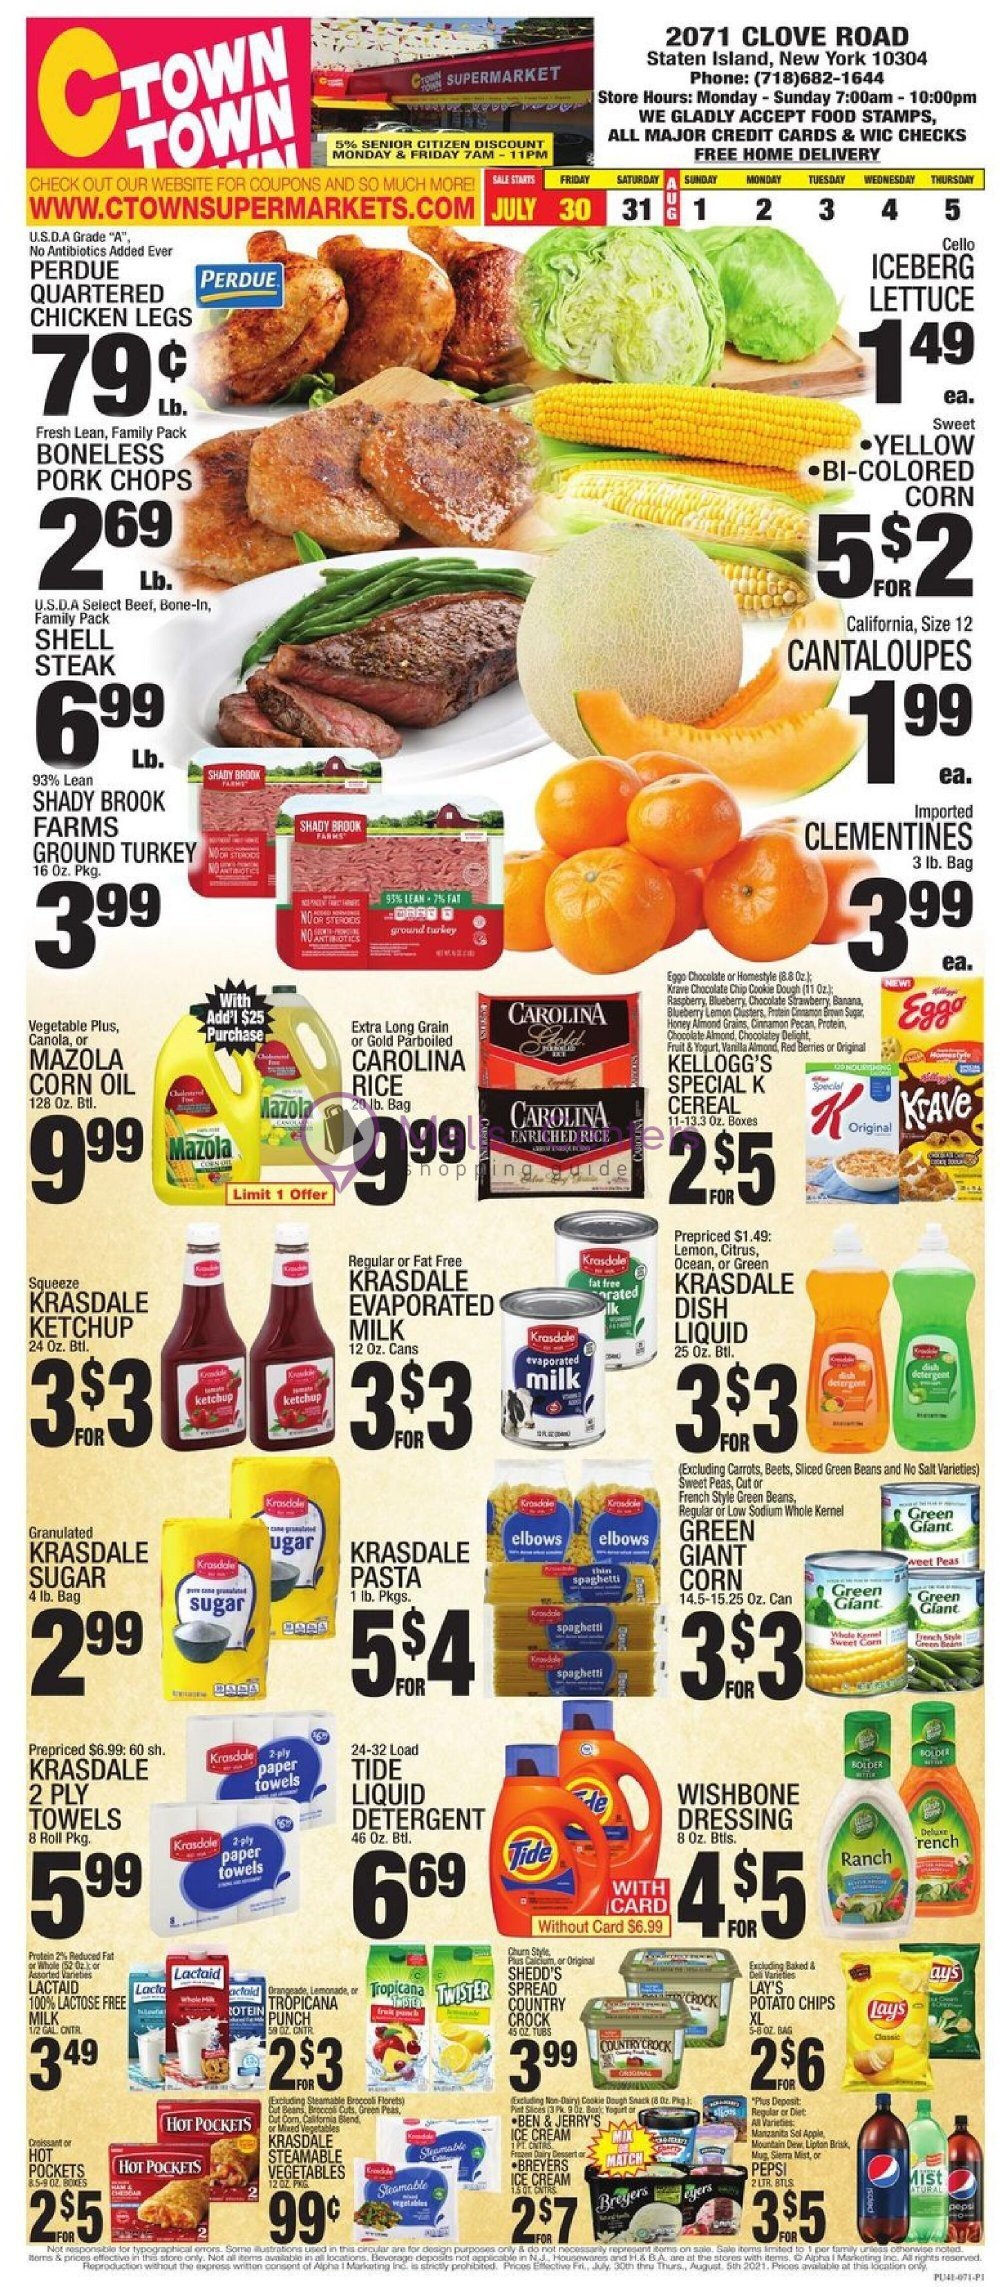 weekly ads C-Town Supermarkets - page 1 - mallscenters.com